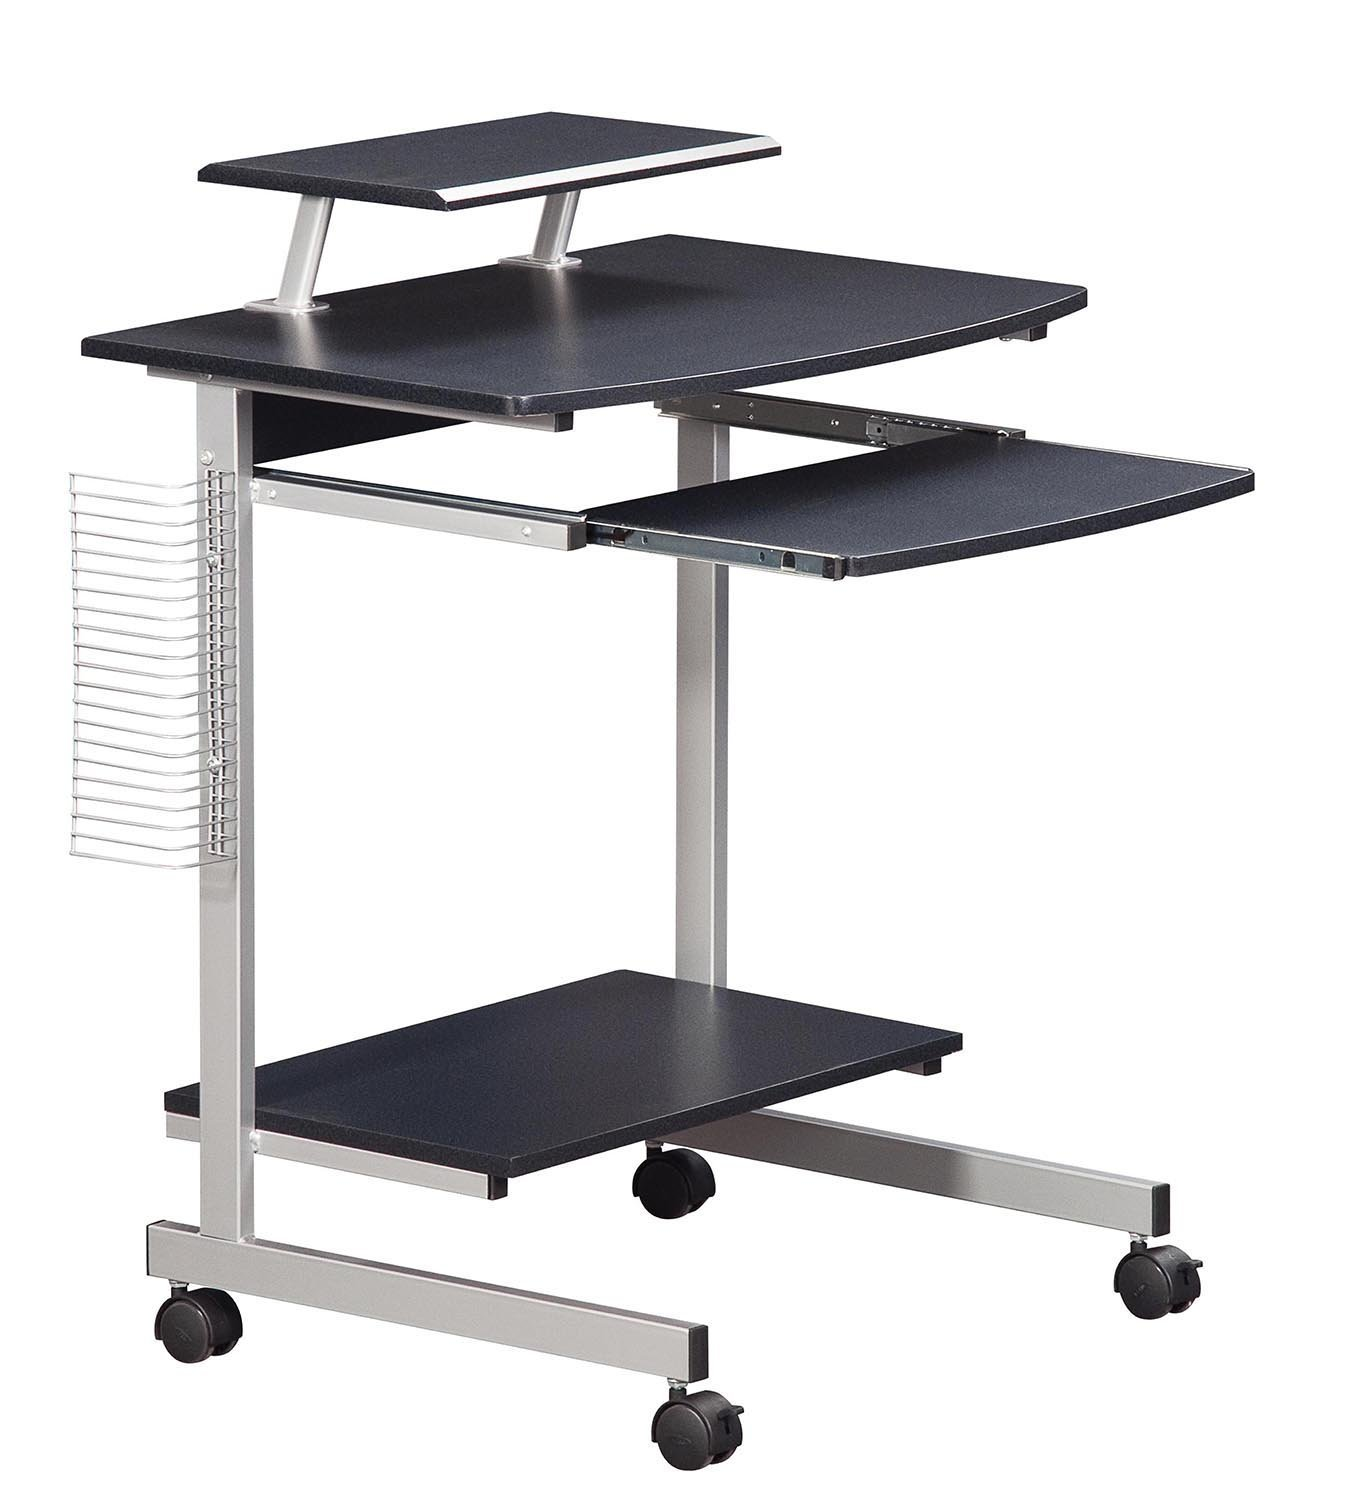 Mobile Compact Computer Cart Printer Stand and 50 similar items